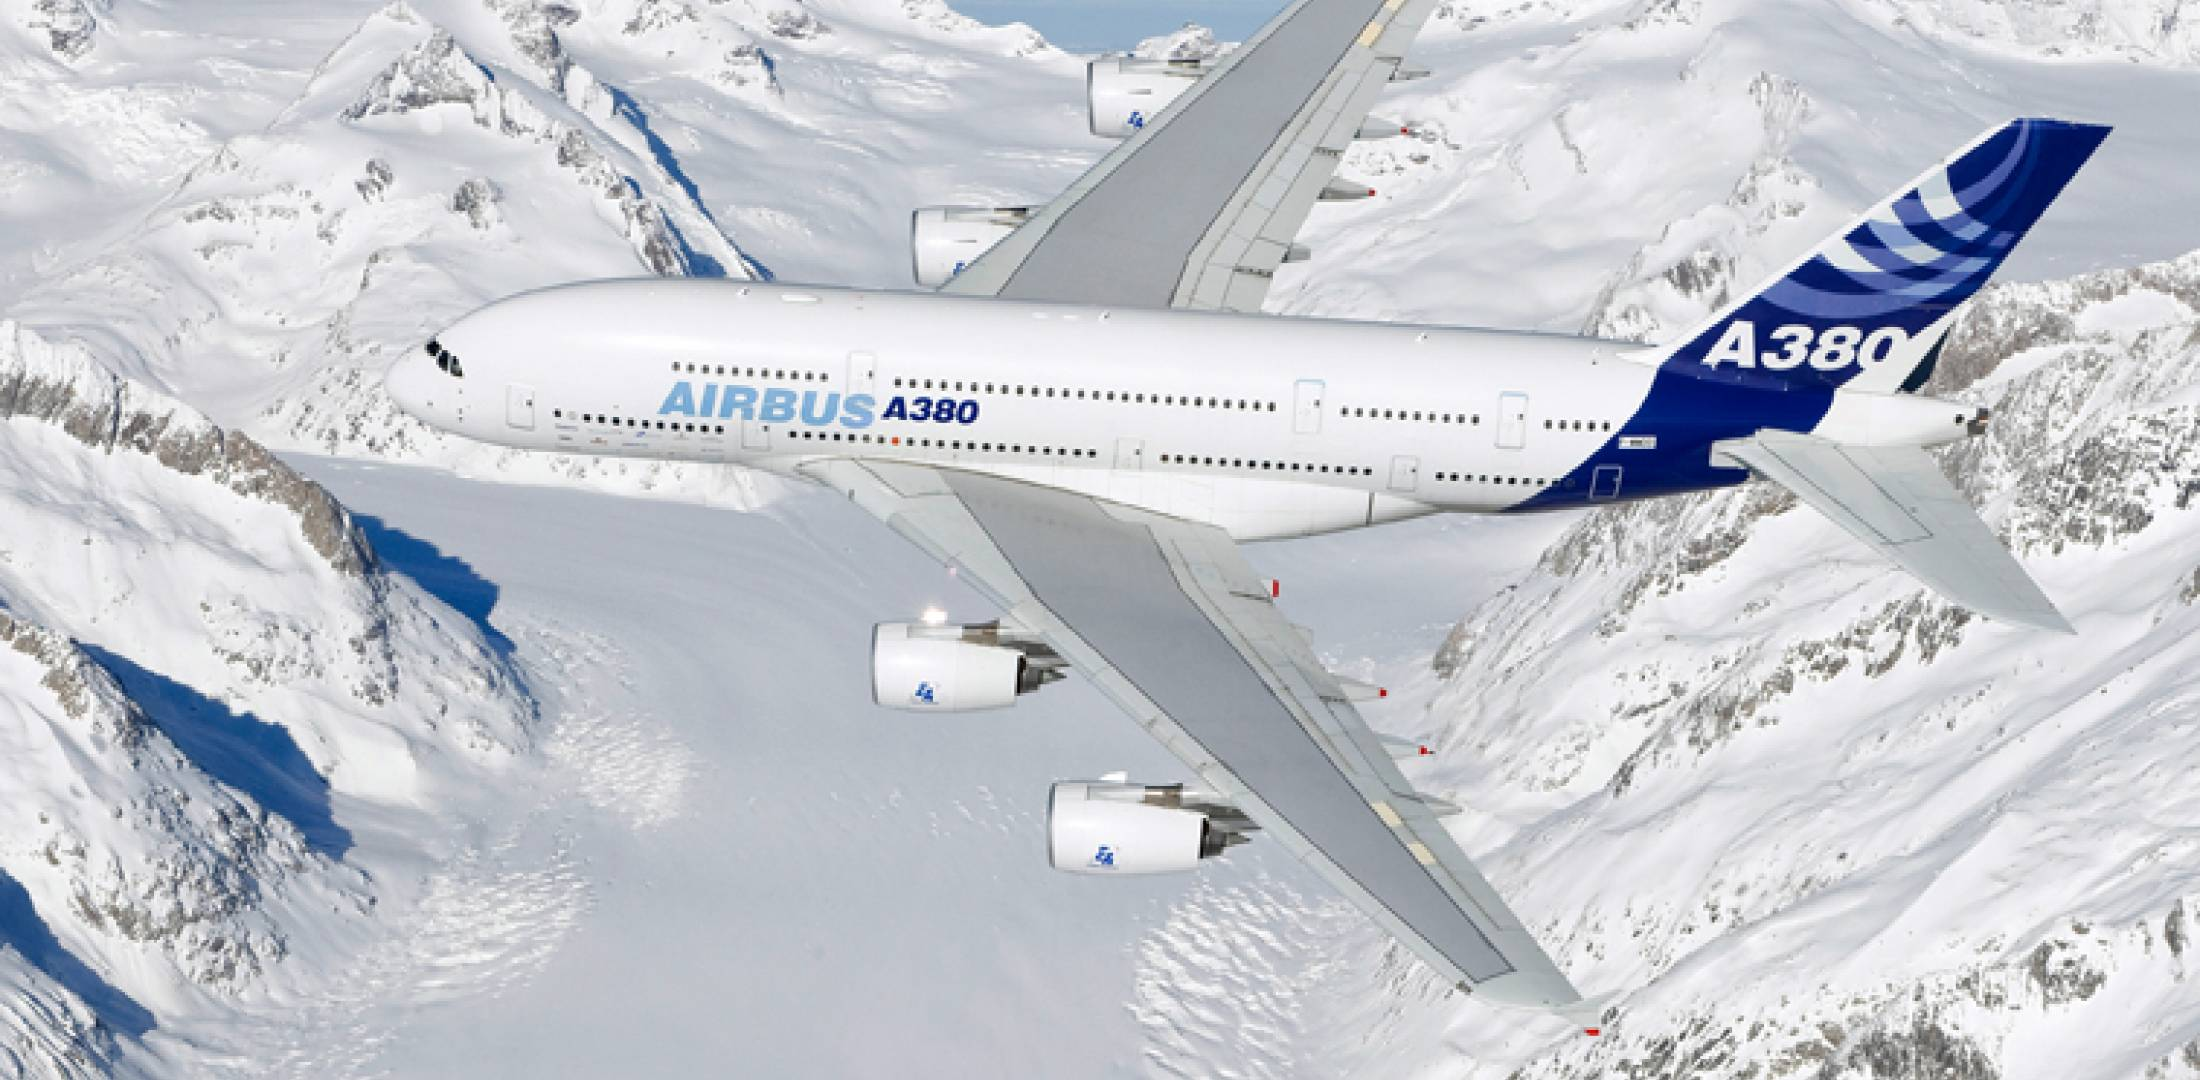 Boeing is demanding that Airbus repay or restructure some $4 billion in gover...